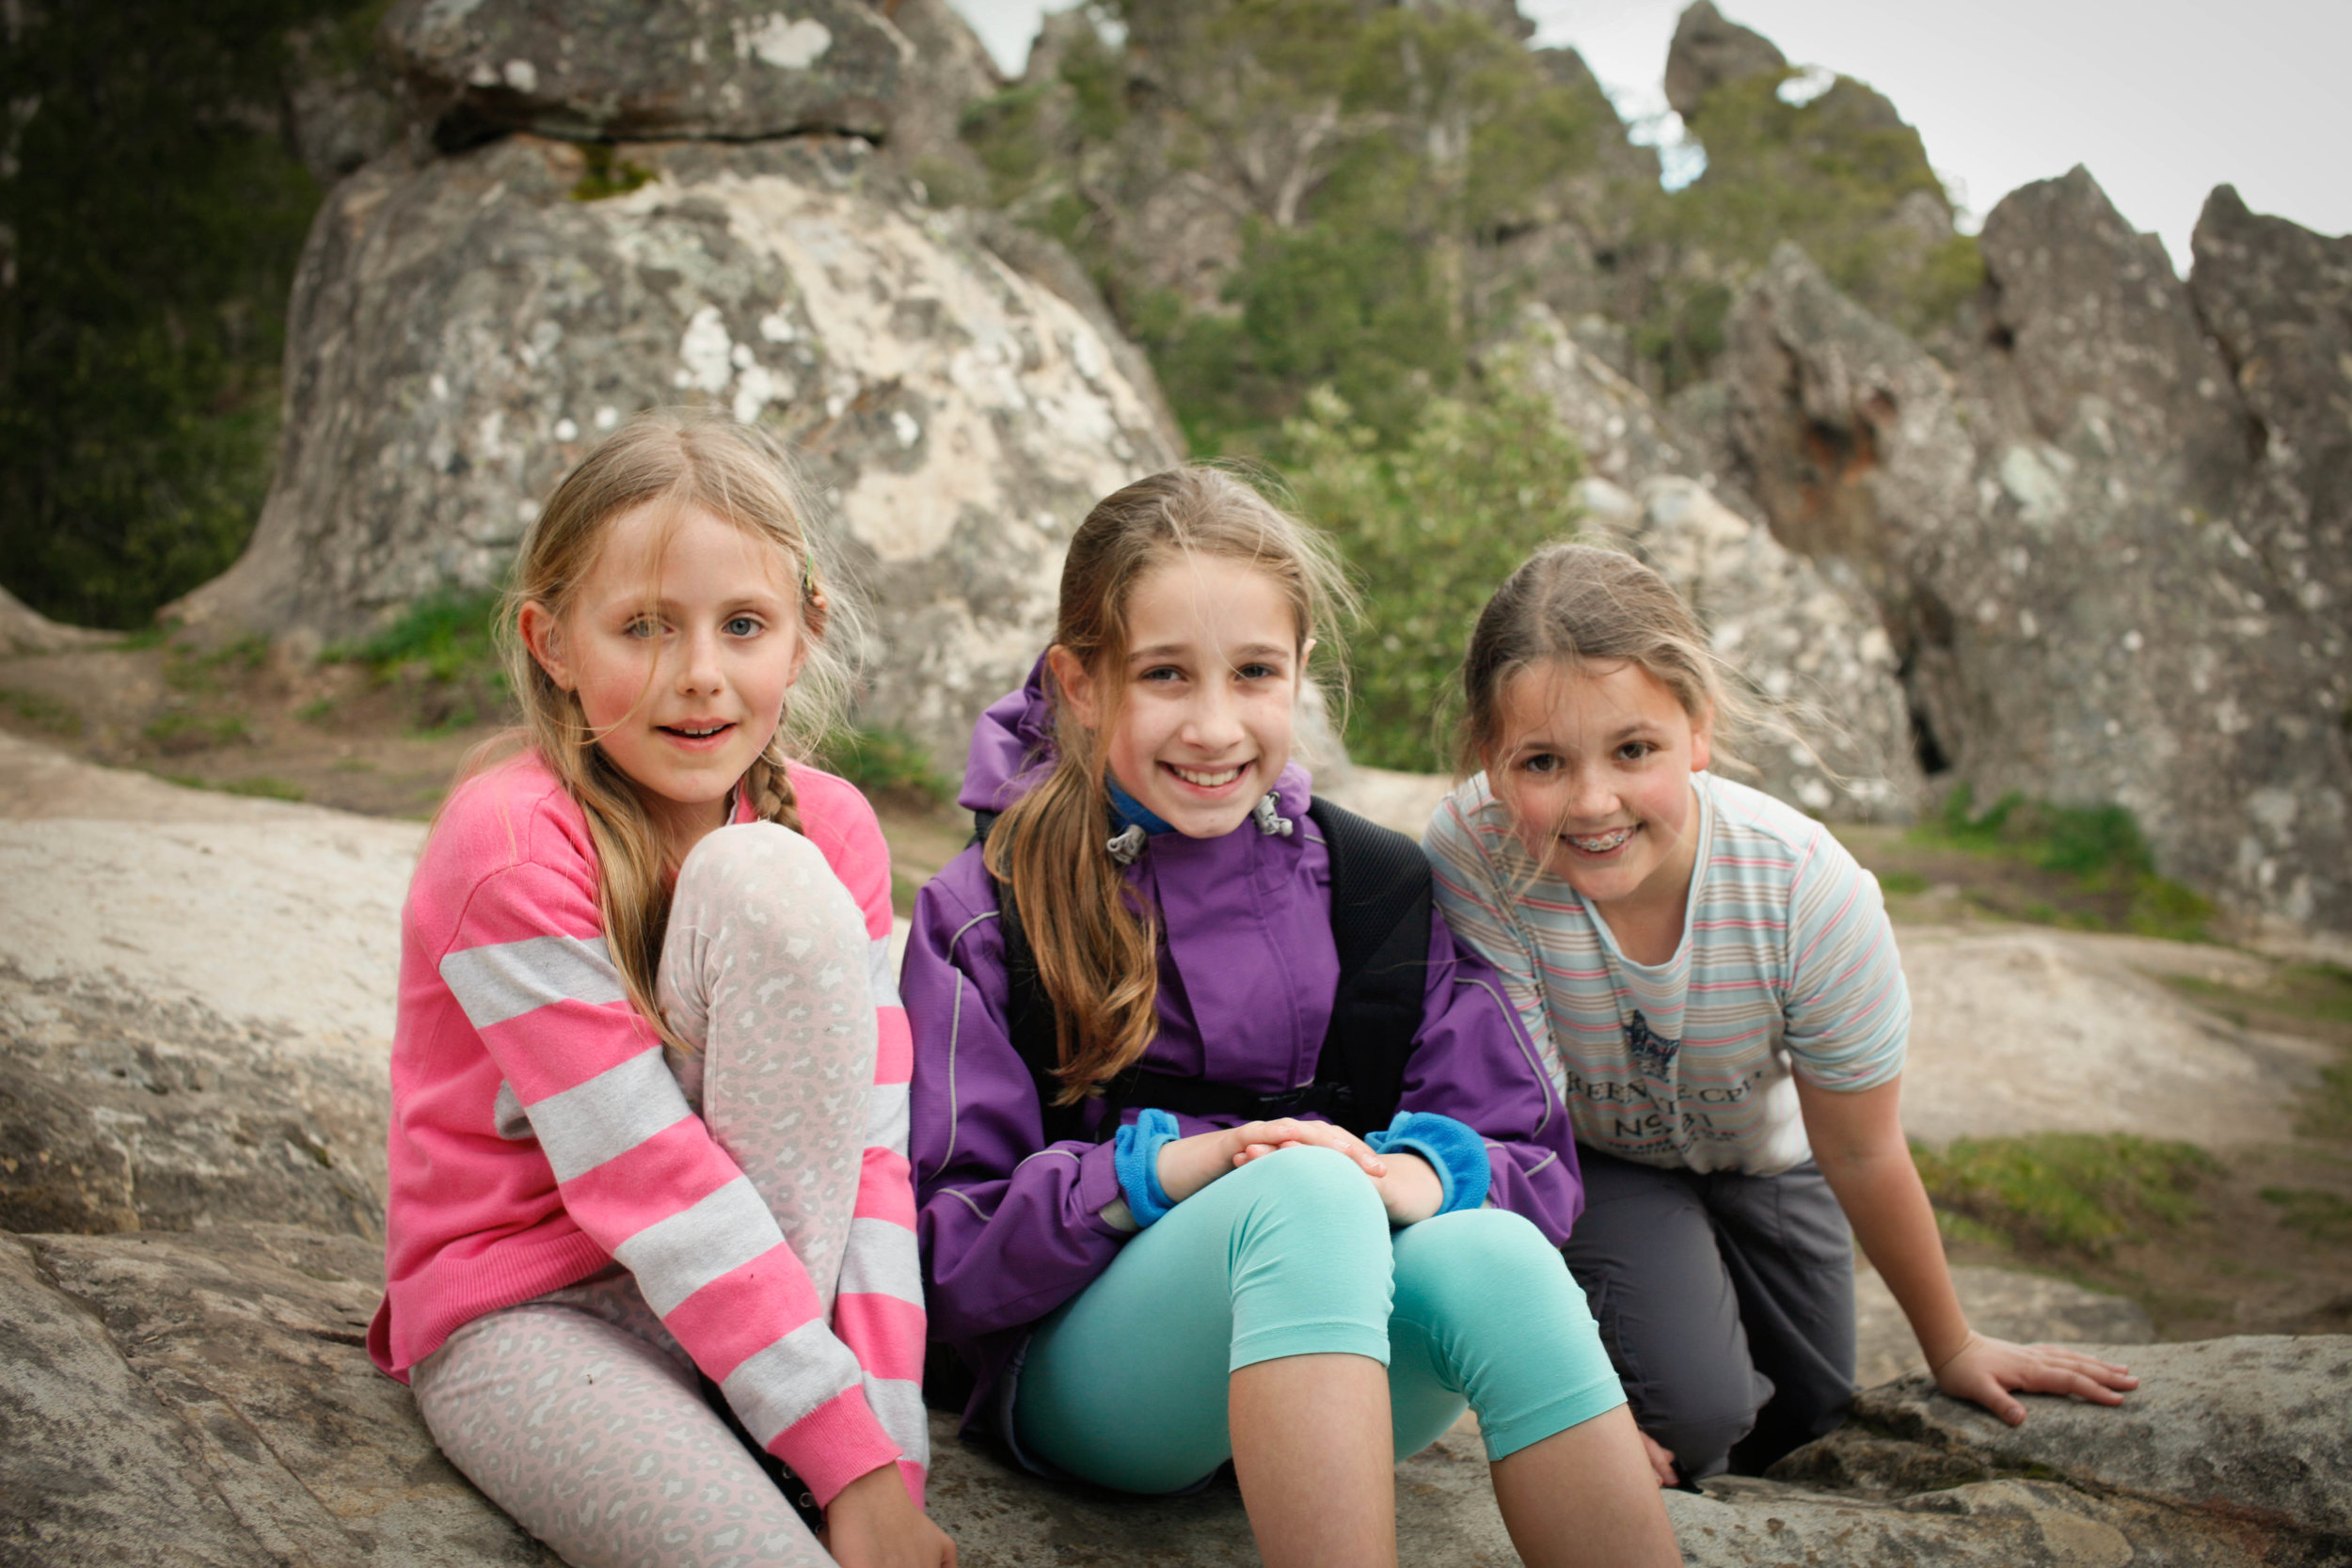 ava-chloe-and-sophie-at-hanging-rock_21933558451_o.jpg